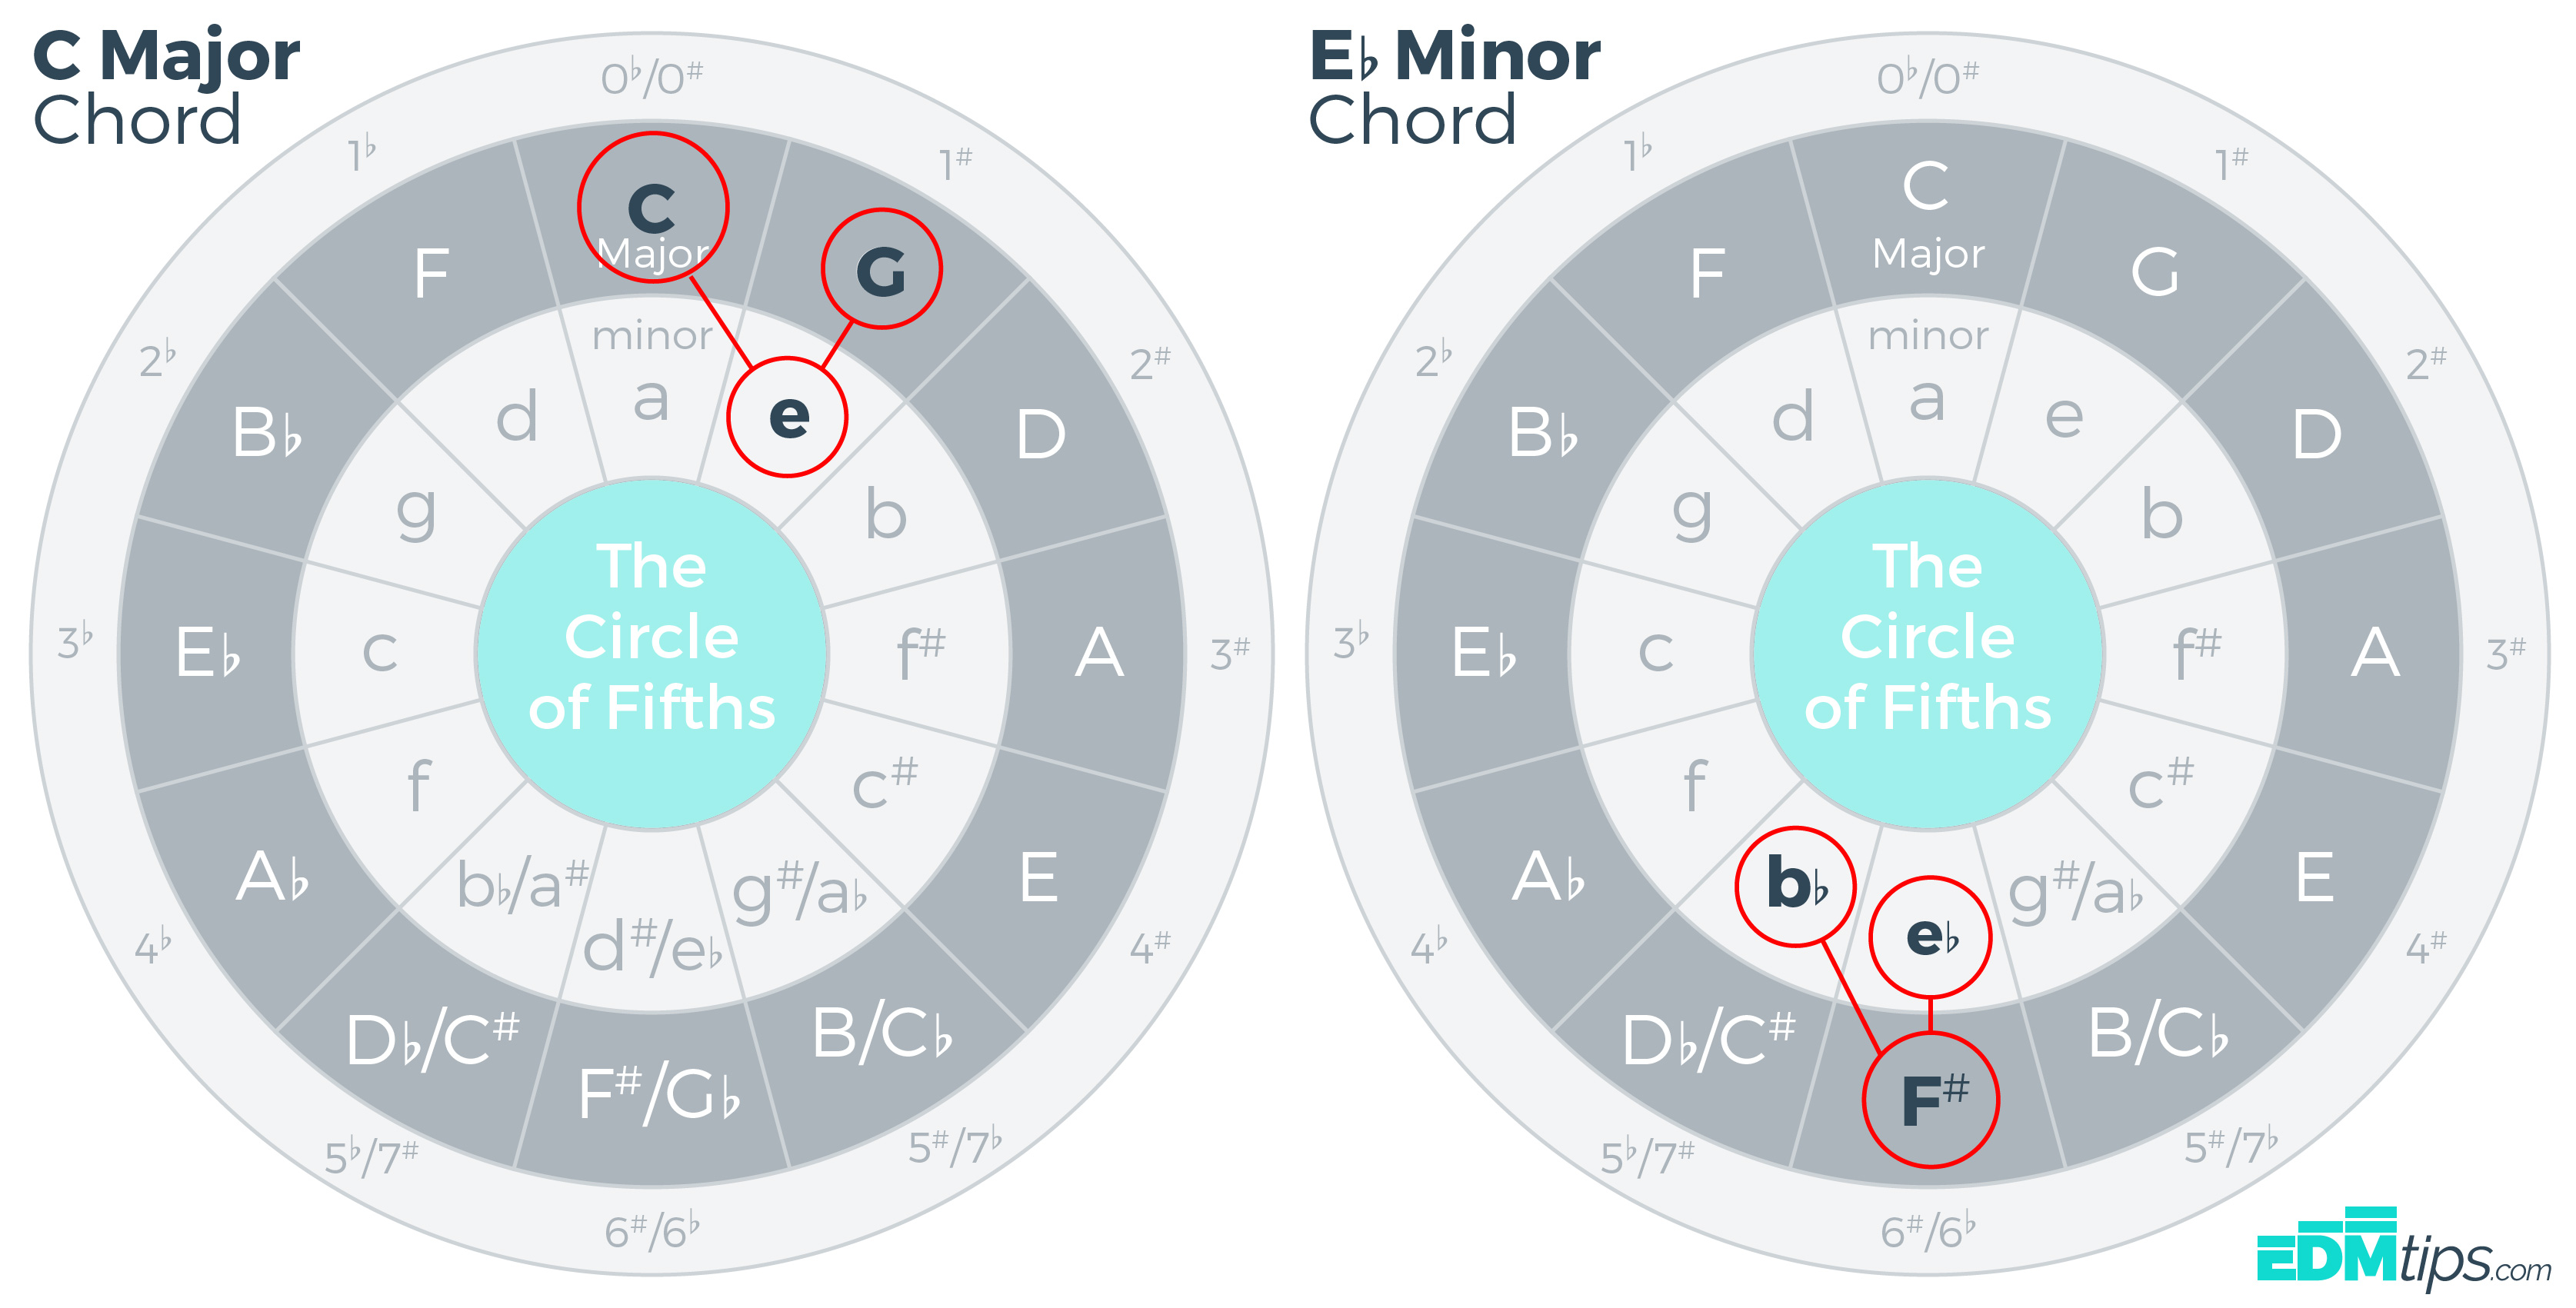 The Circle of Fifths Chords